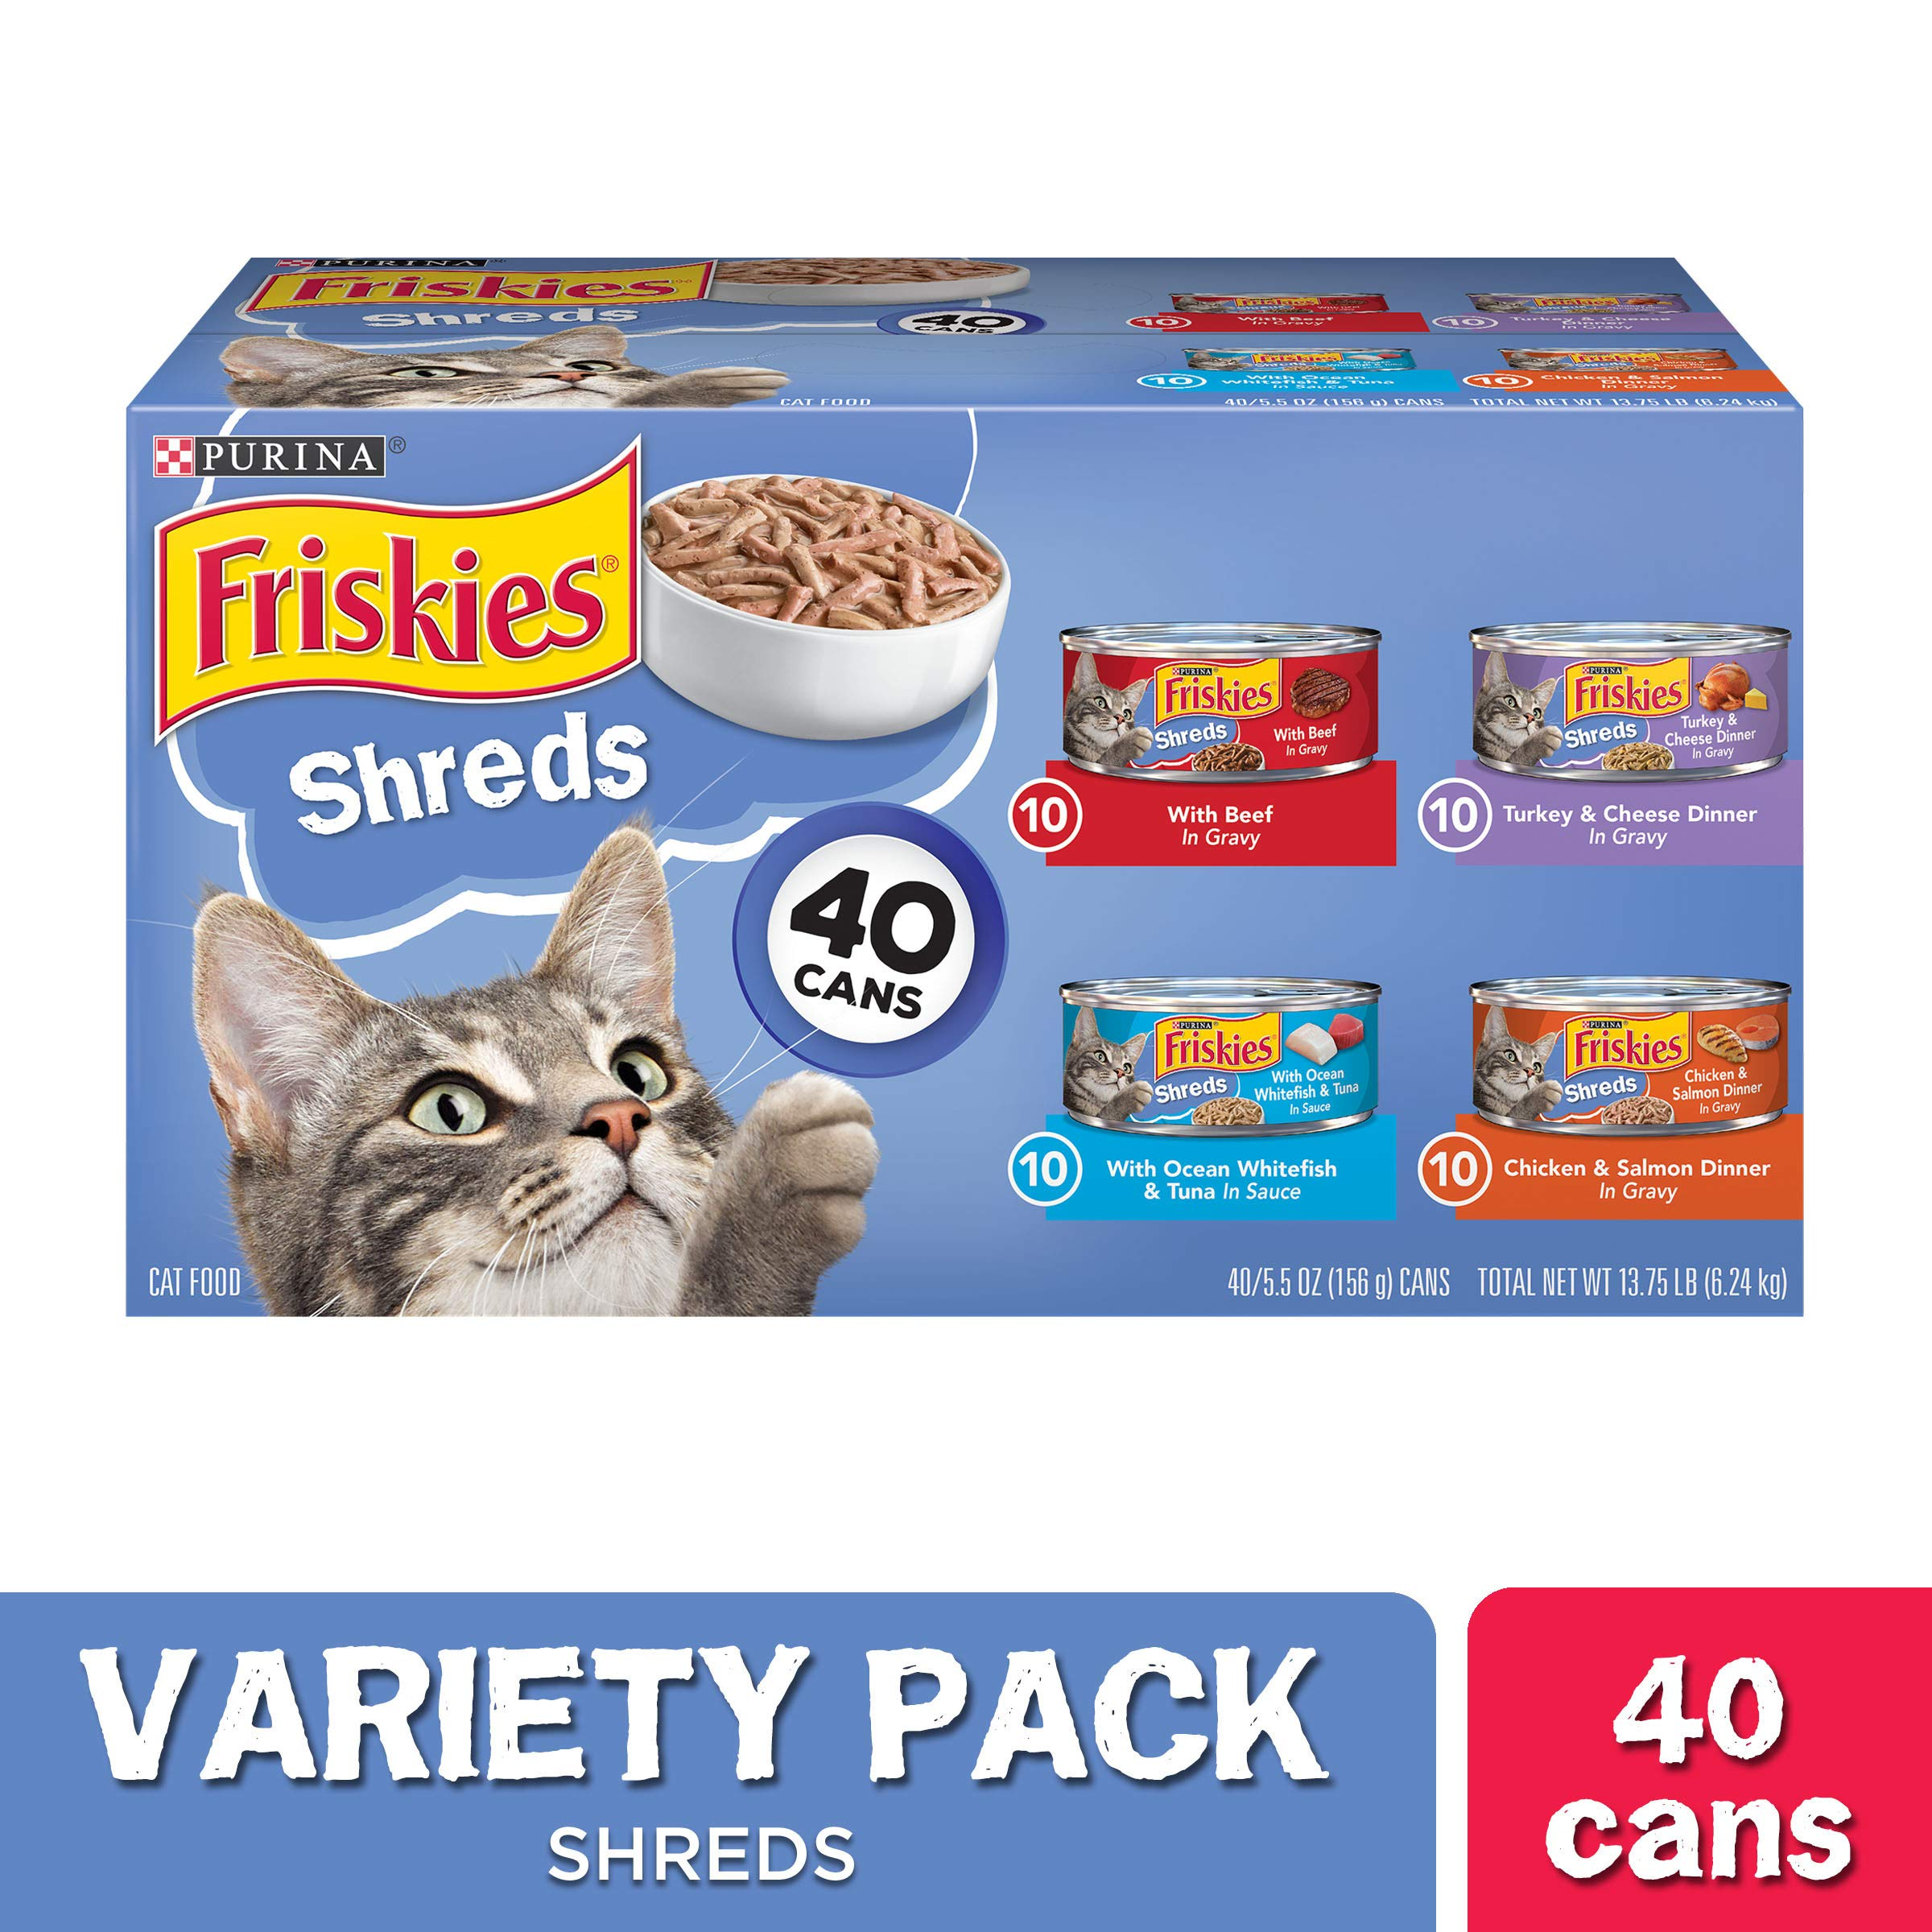 Purina Friskies Wet Cat Food Variety Pack, Shreds Beef, Turkey, Whitefish, and Chicken & Salmon - (40) 5.5 oz. Cans by Purina Friskies